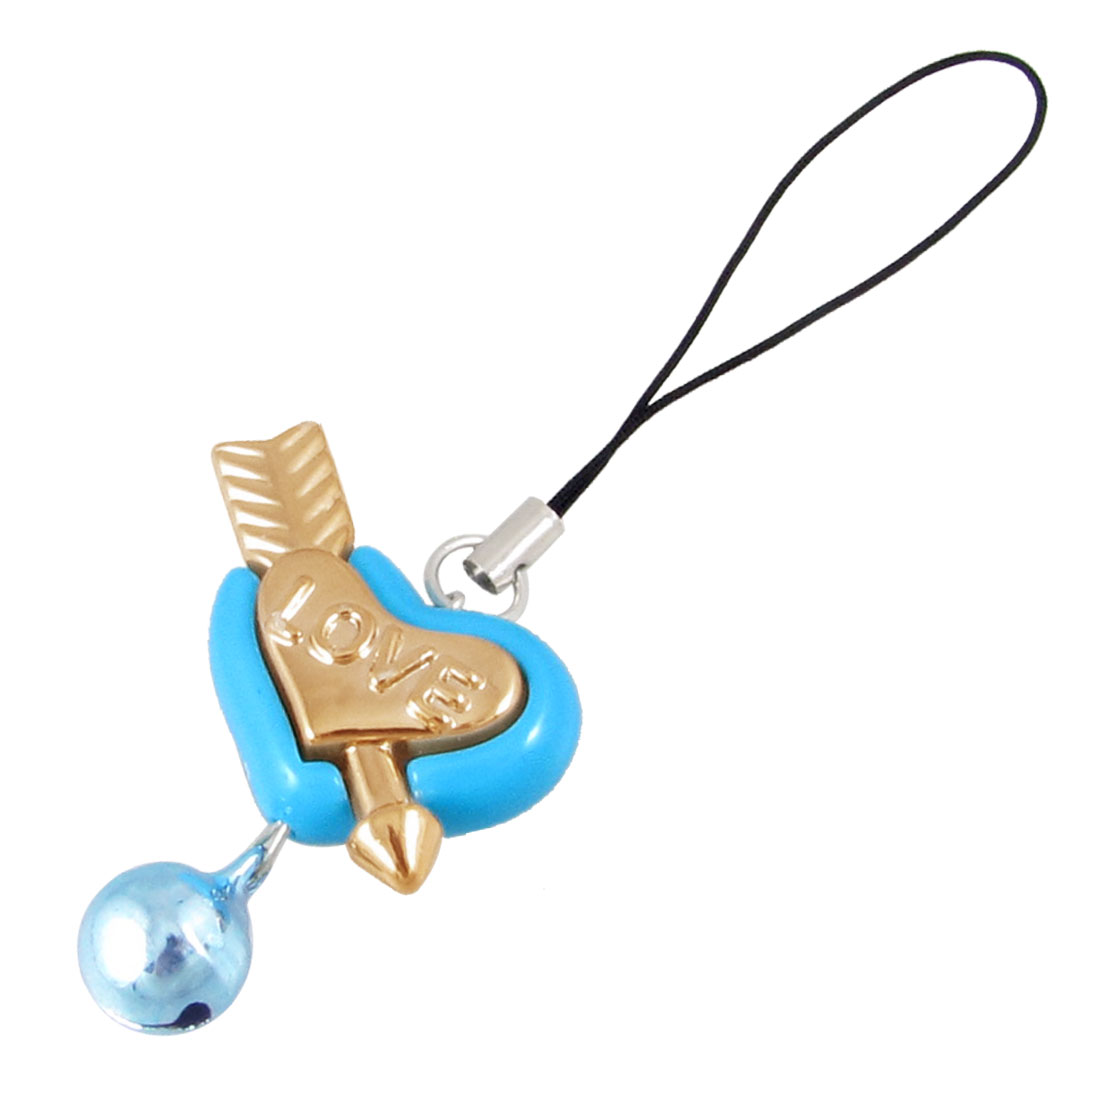 "4"" Long Blue Heart Shaped Bells Accent Pendent for Lady"